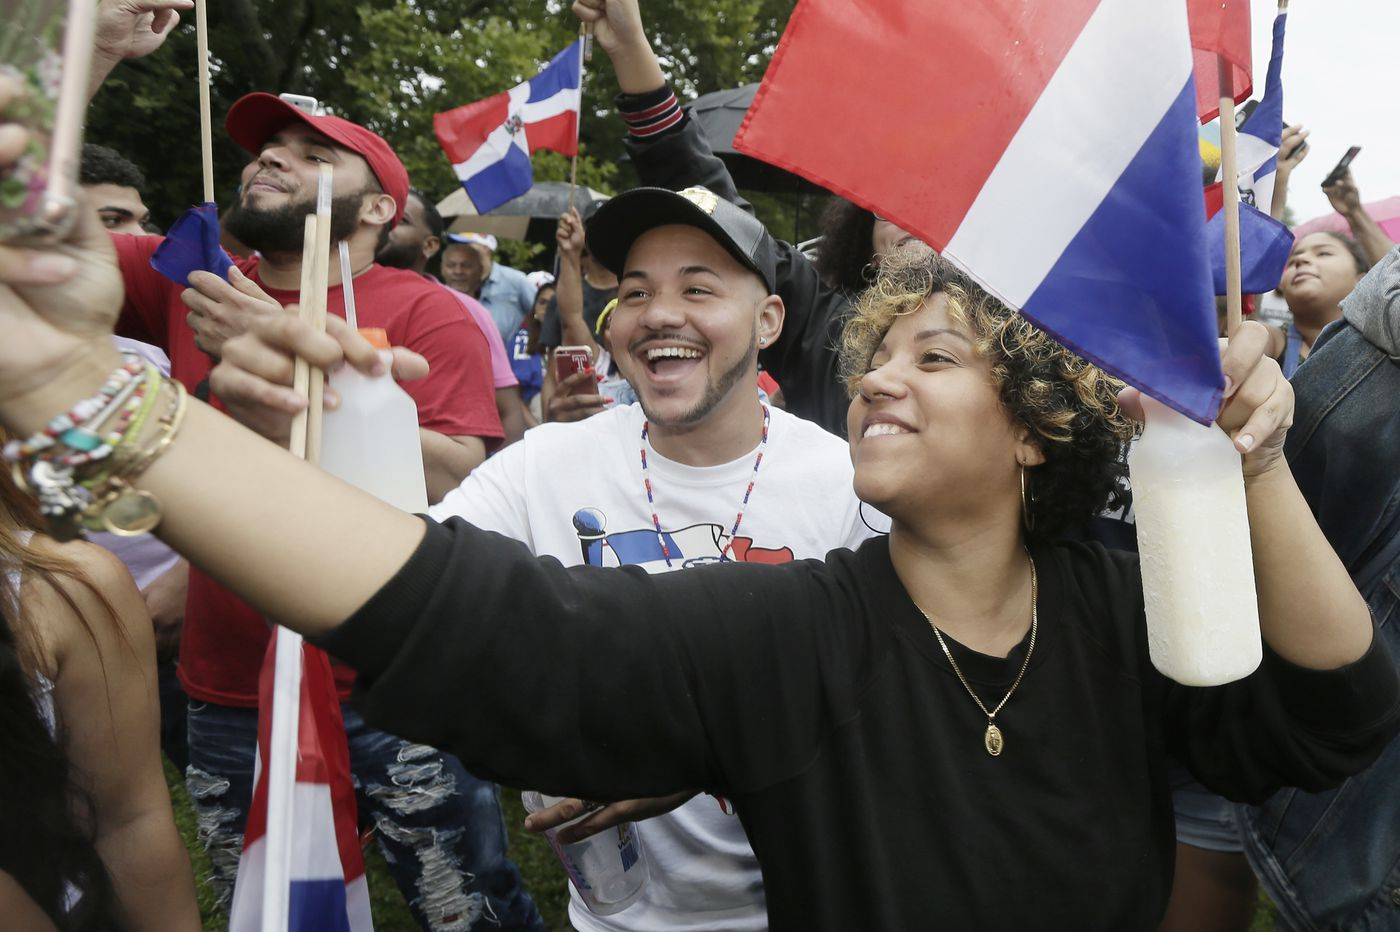 Despite the rain (again), Dominicans celebrated culture and their Philly impact